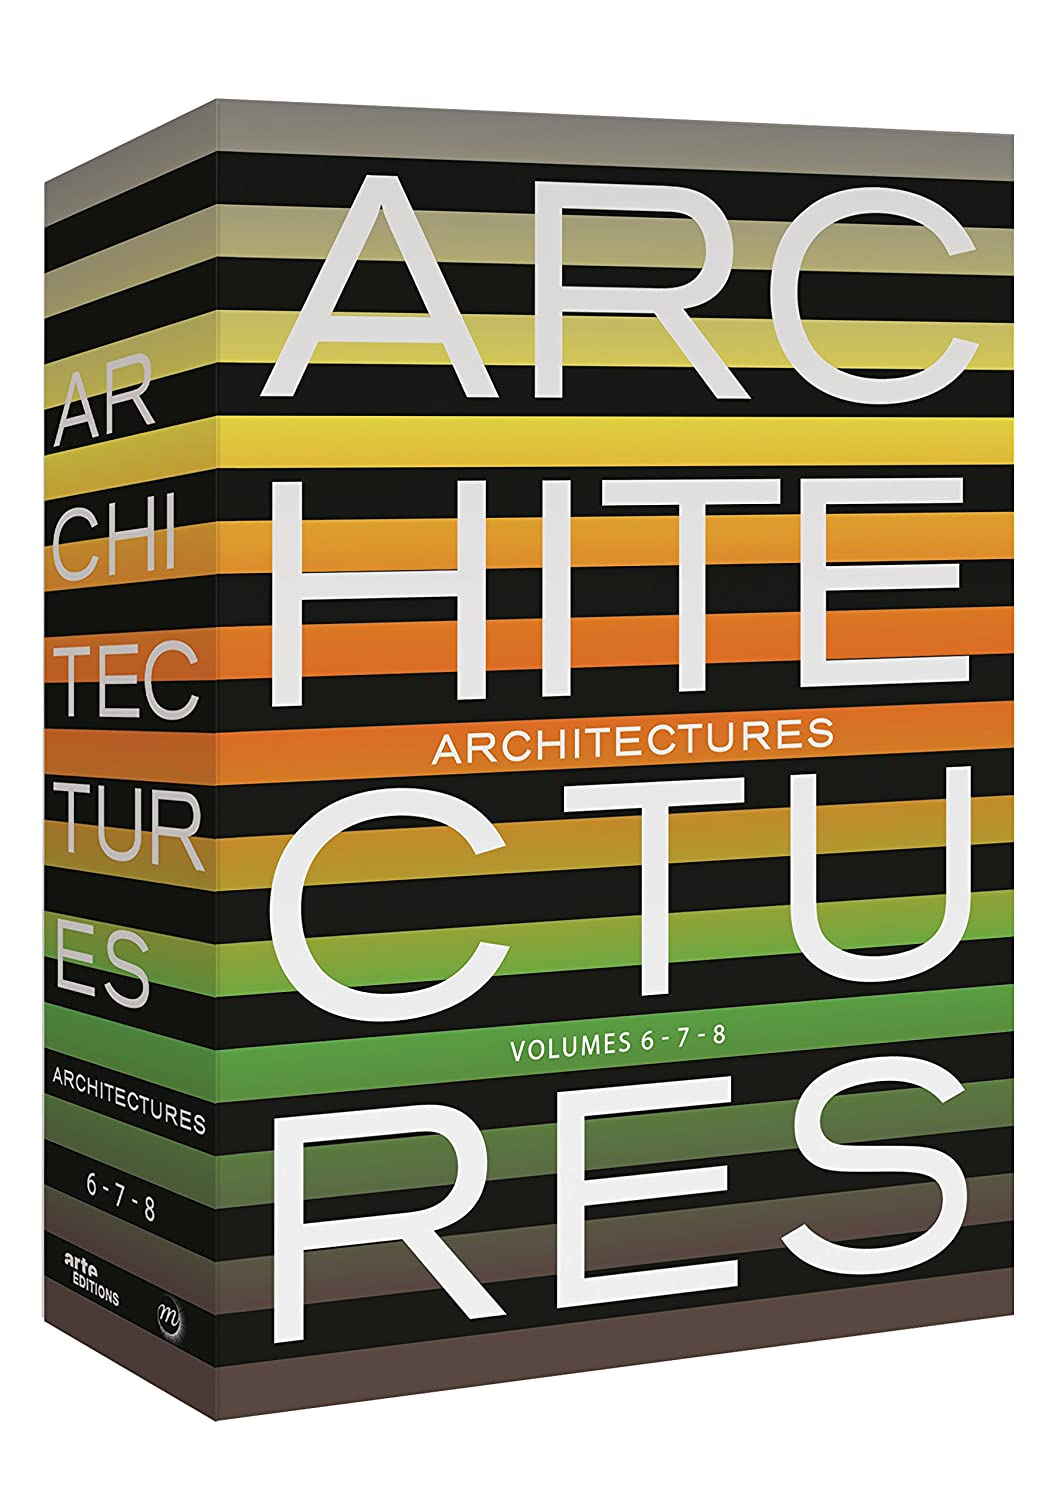 Amazon.com: Architectures - Volumes 6 - 7 - 8: Movies & TV